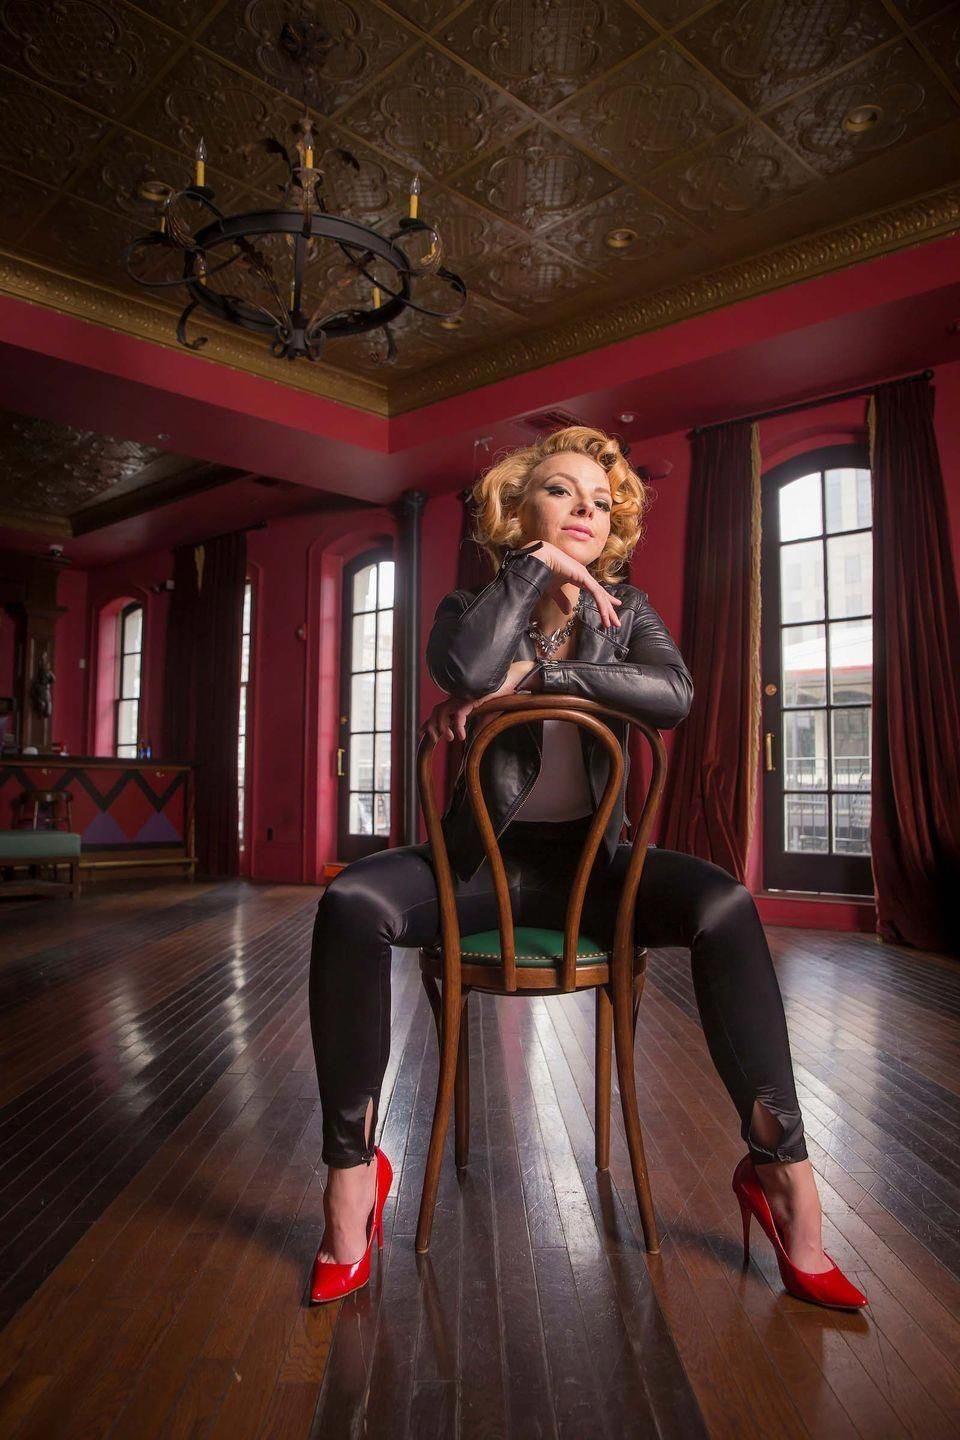 Blues guitarist samantha fish brings her sultry style to